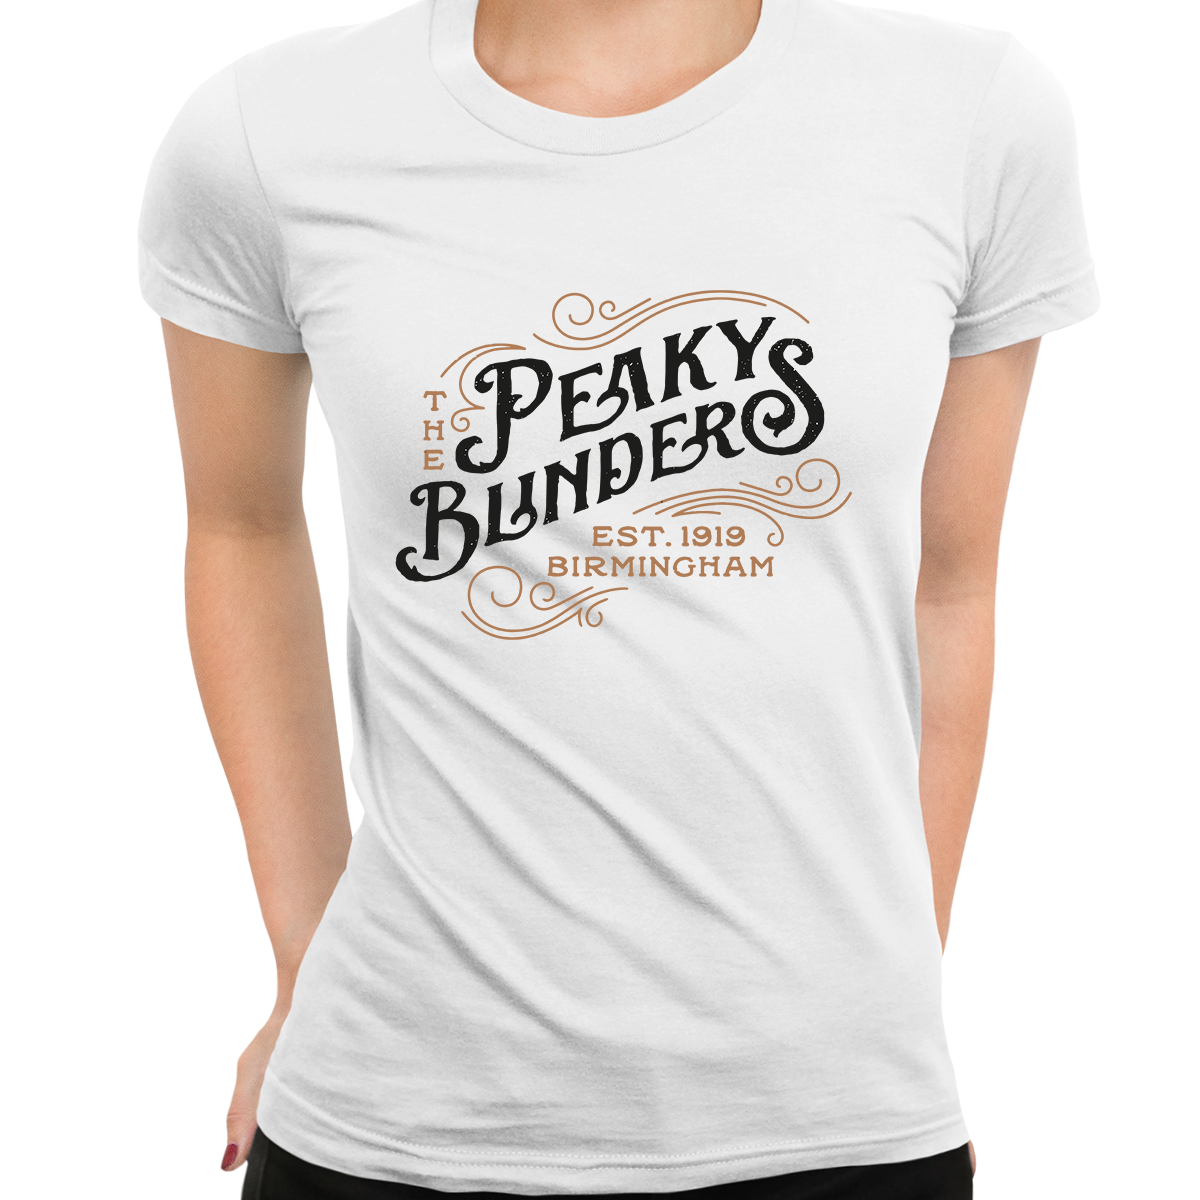 Women's The Peaky Blinders Tommy Shelby's Movie Crew Neck White T-shirt